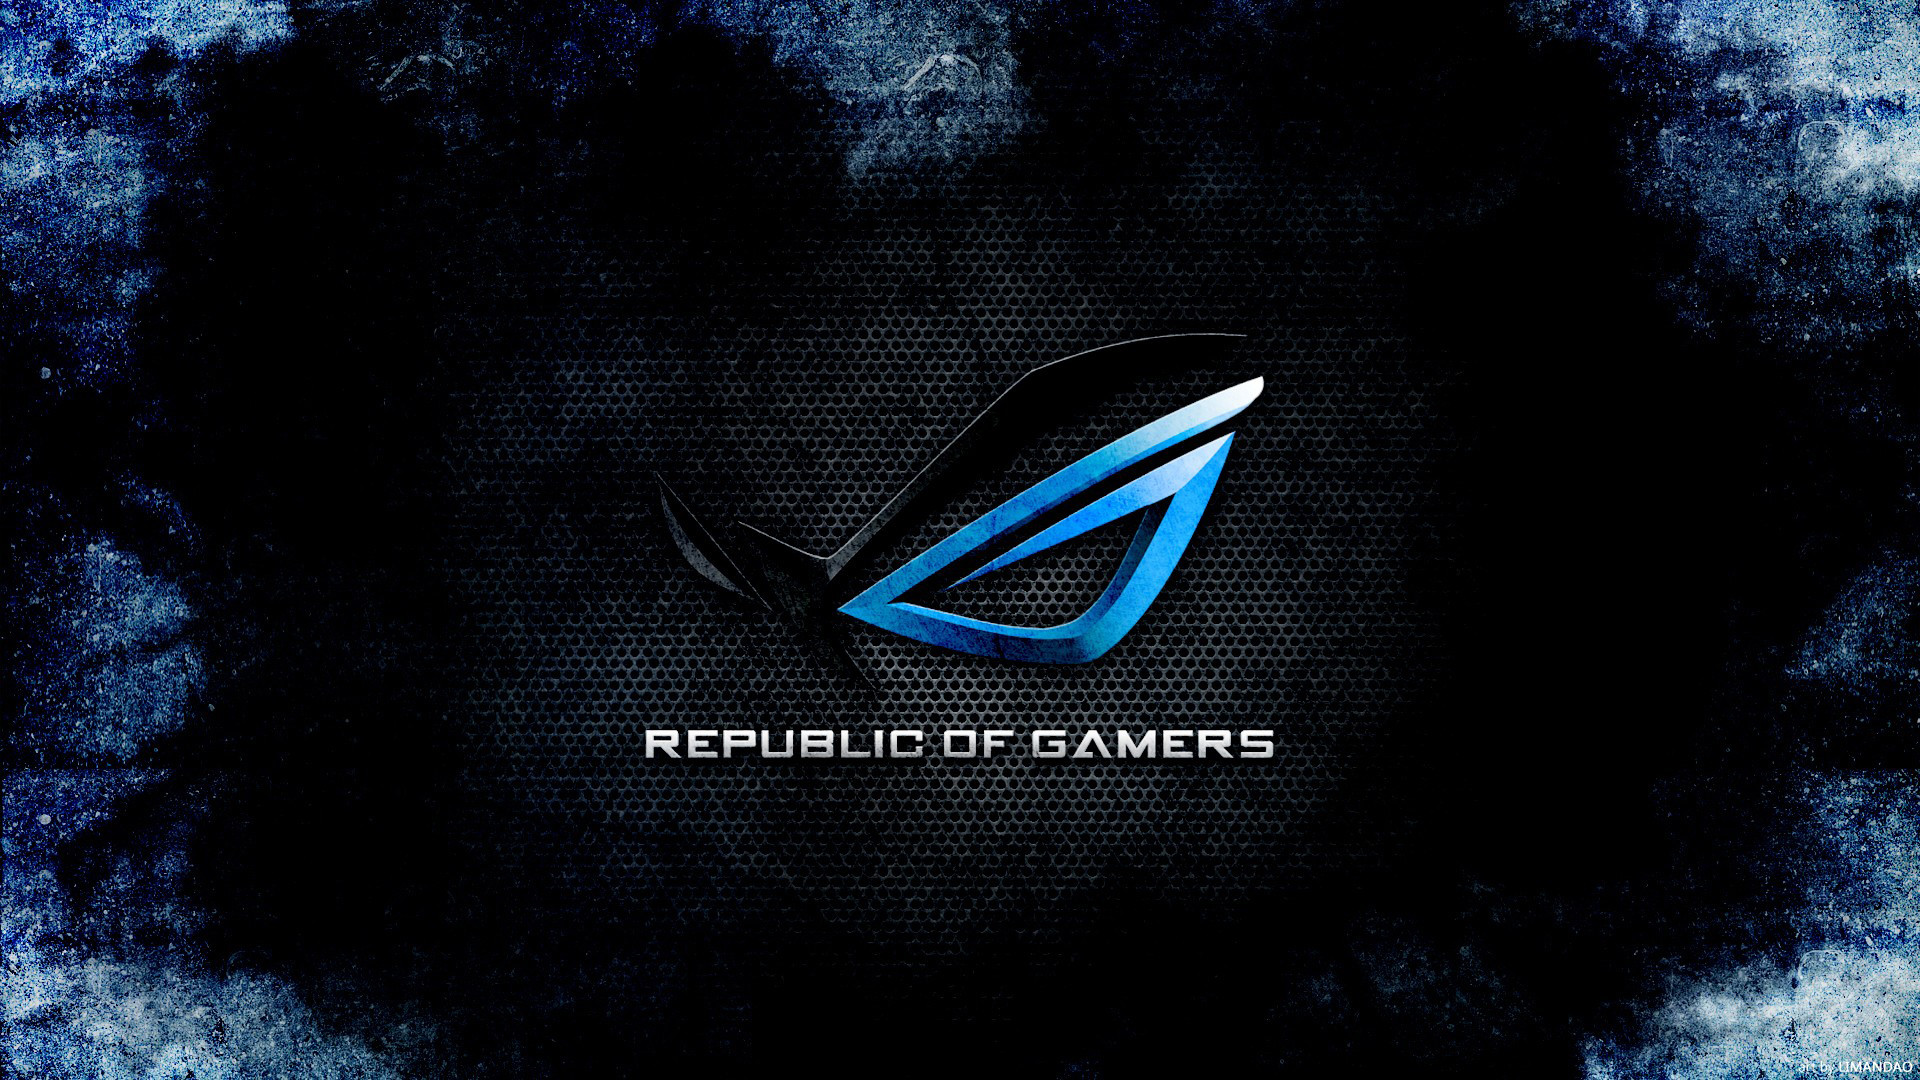 Gaming Hd Wallpapers 1080p 71 Images